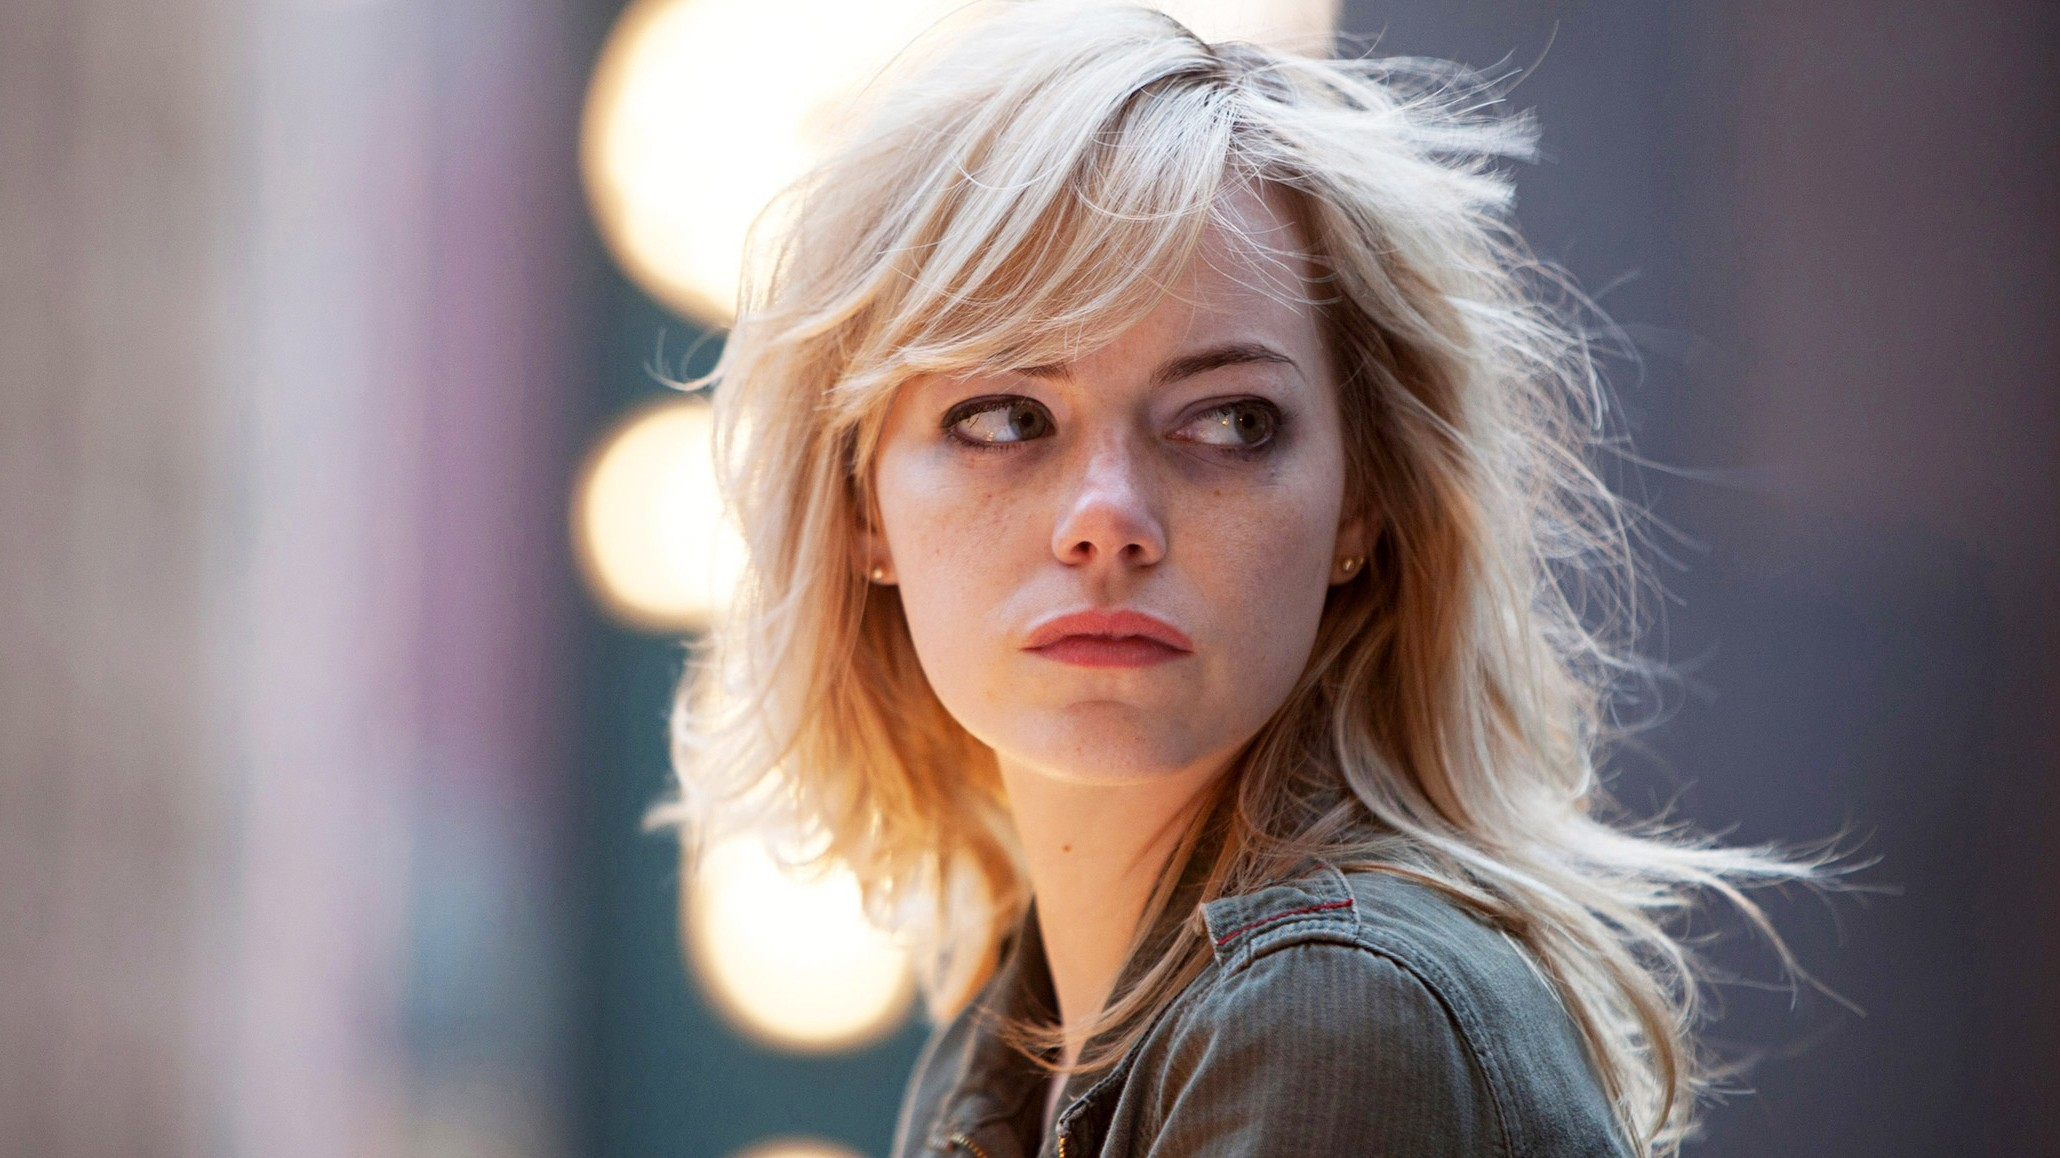 free emma stone lovely side eye look still hd computer desktop pictures background